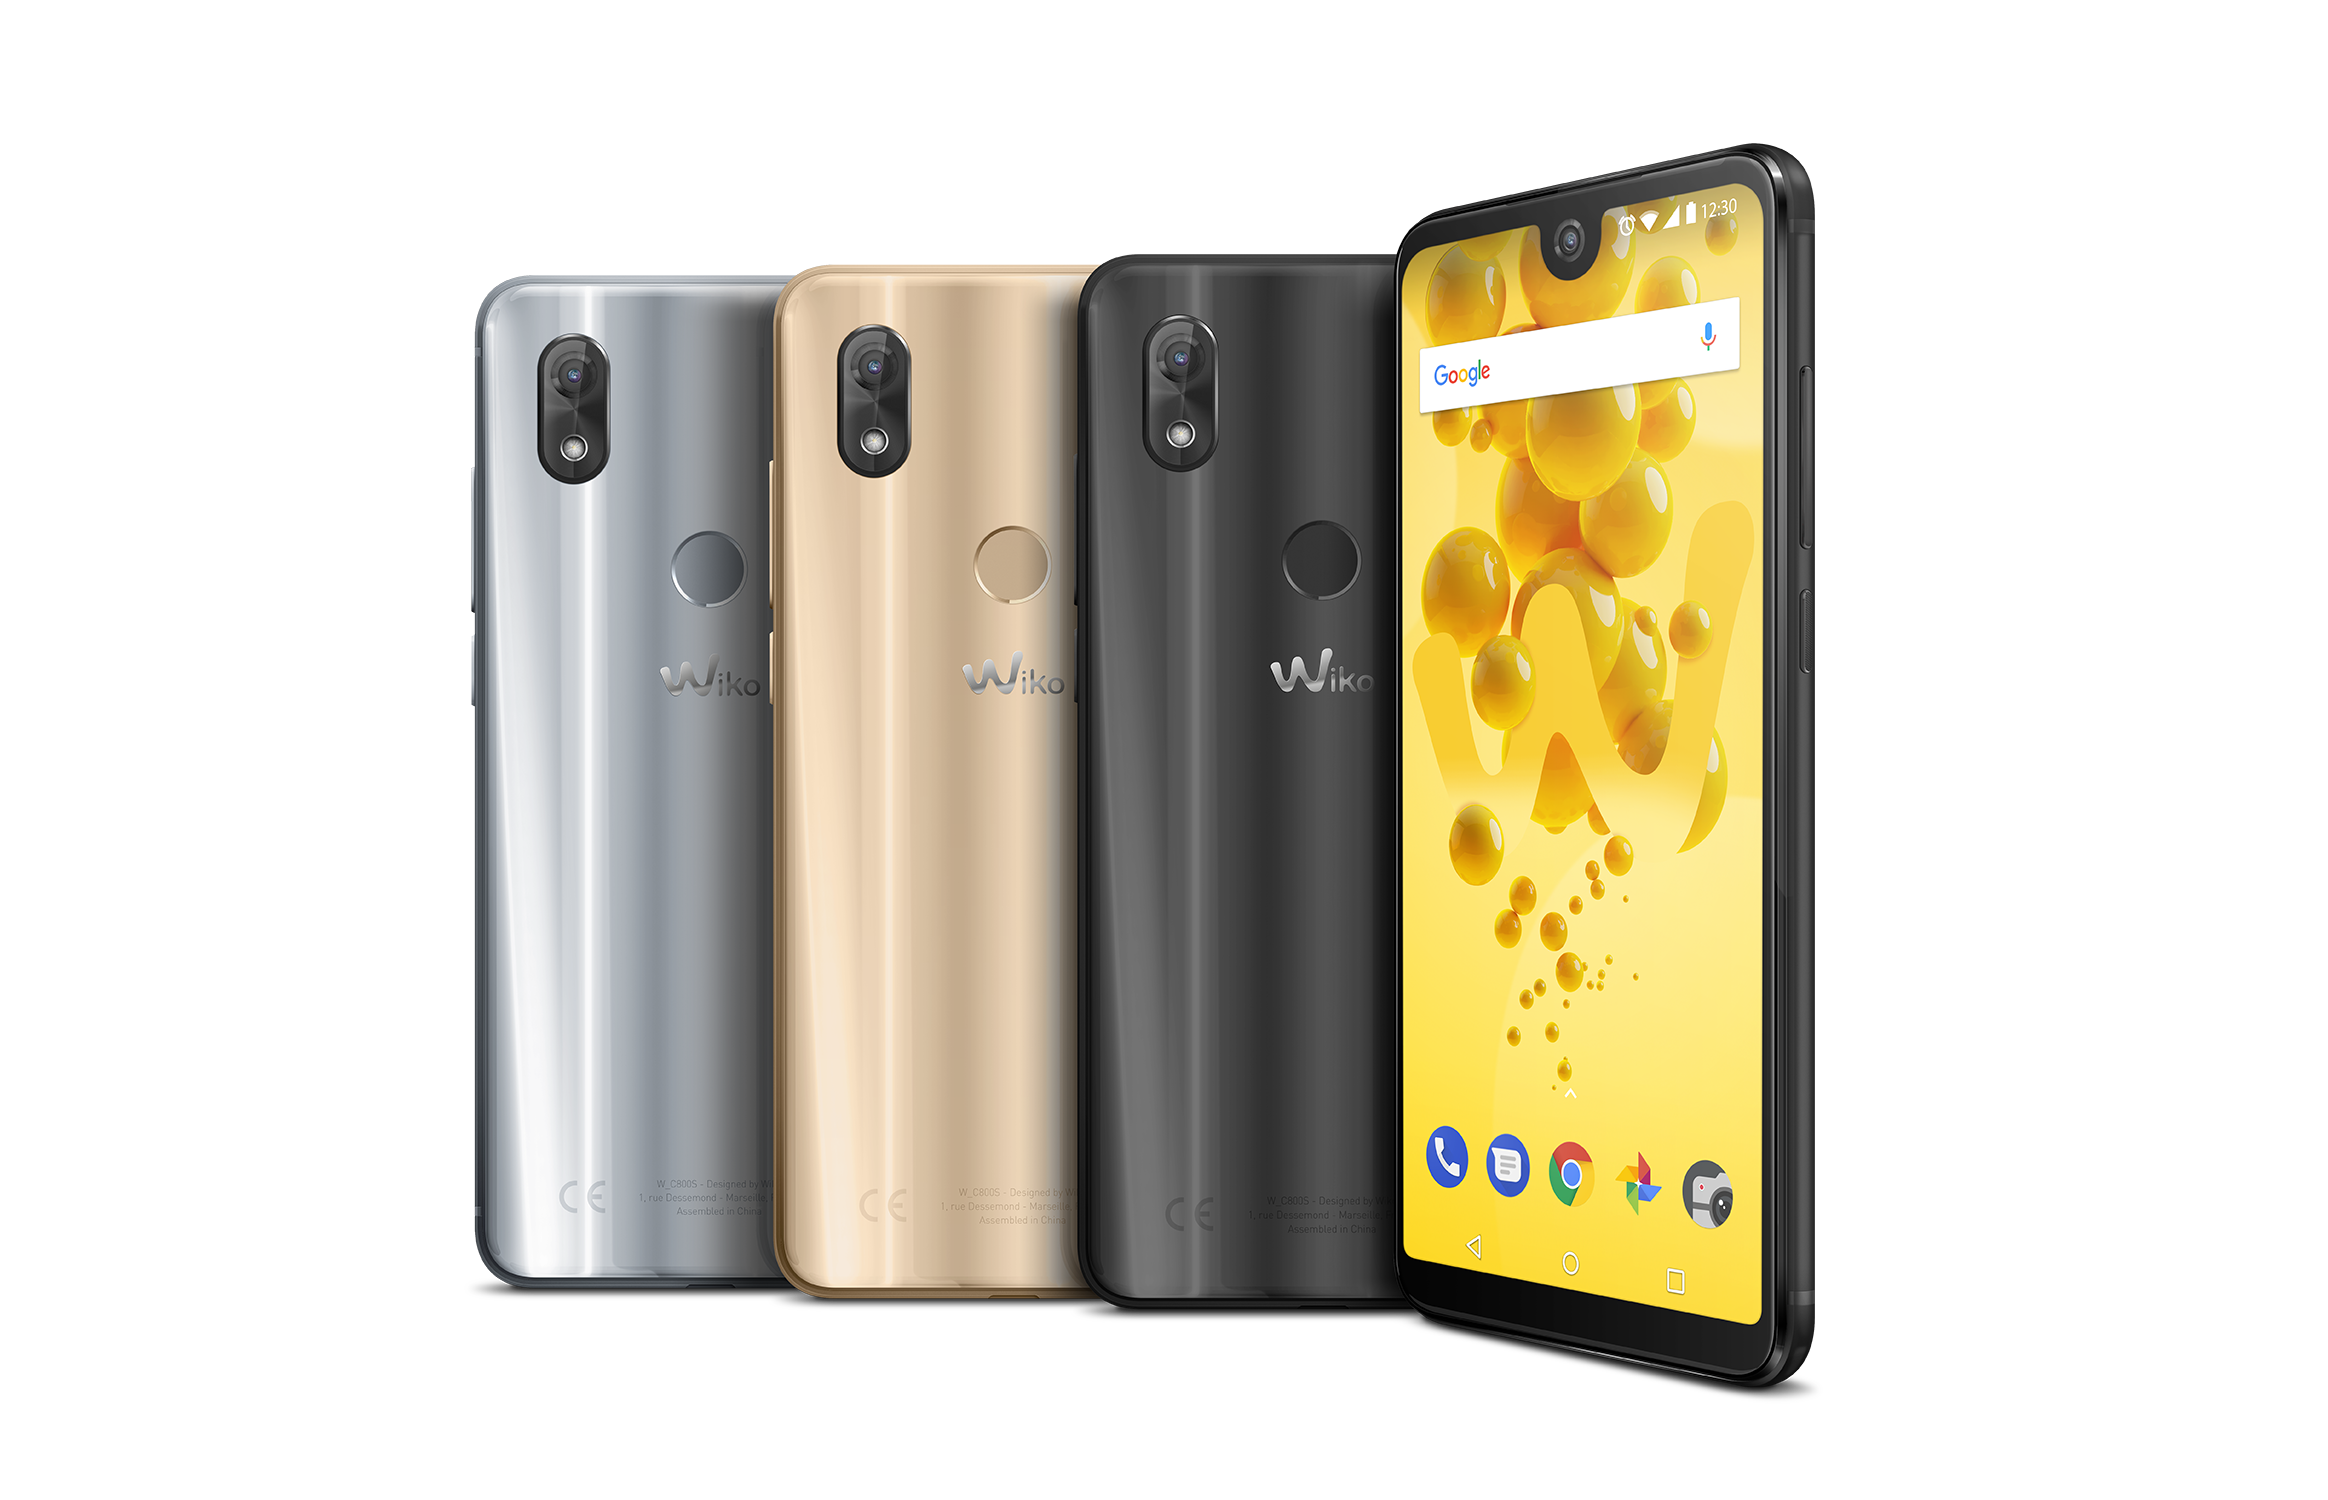 Wiko_MWC2018_View-2_All-colors-02_LD(1)